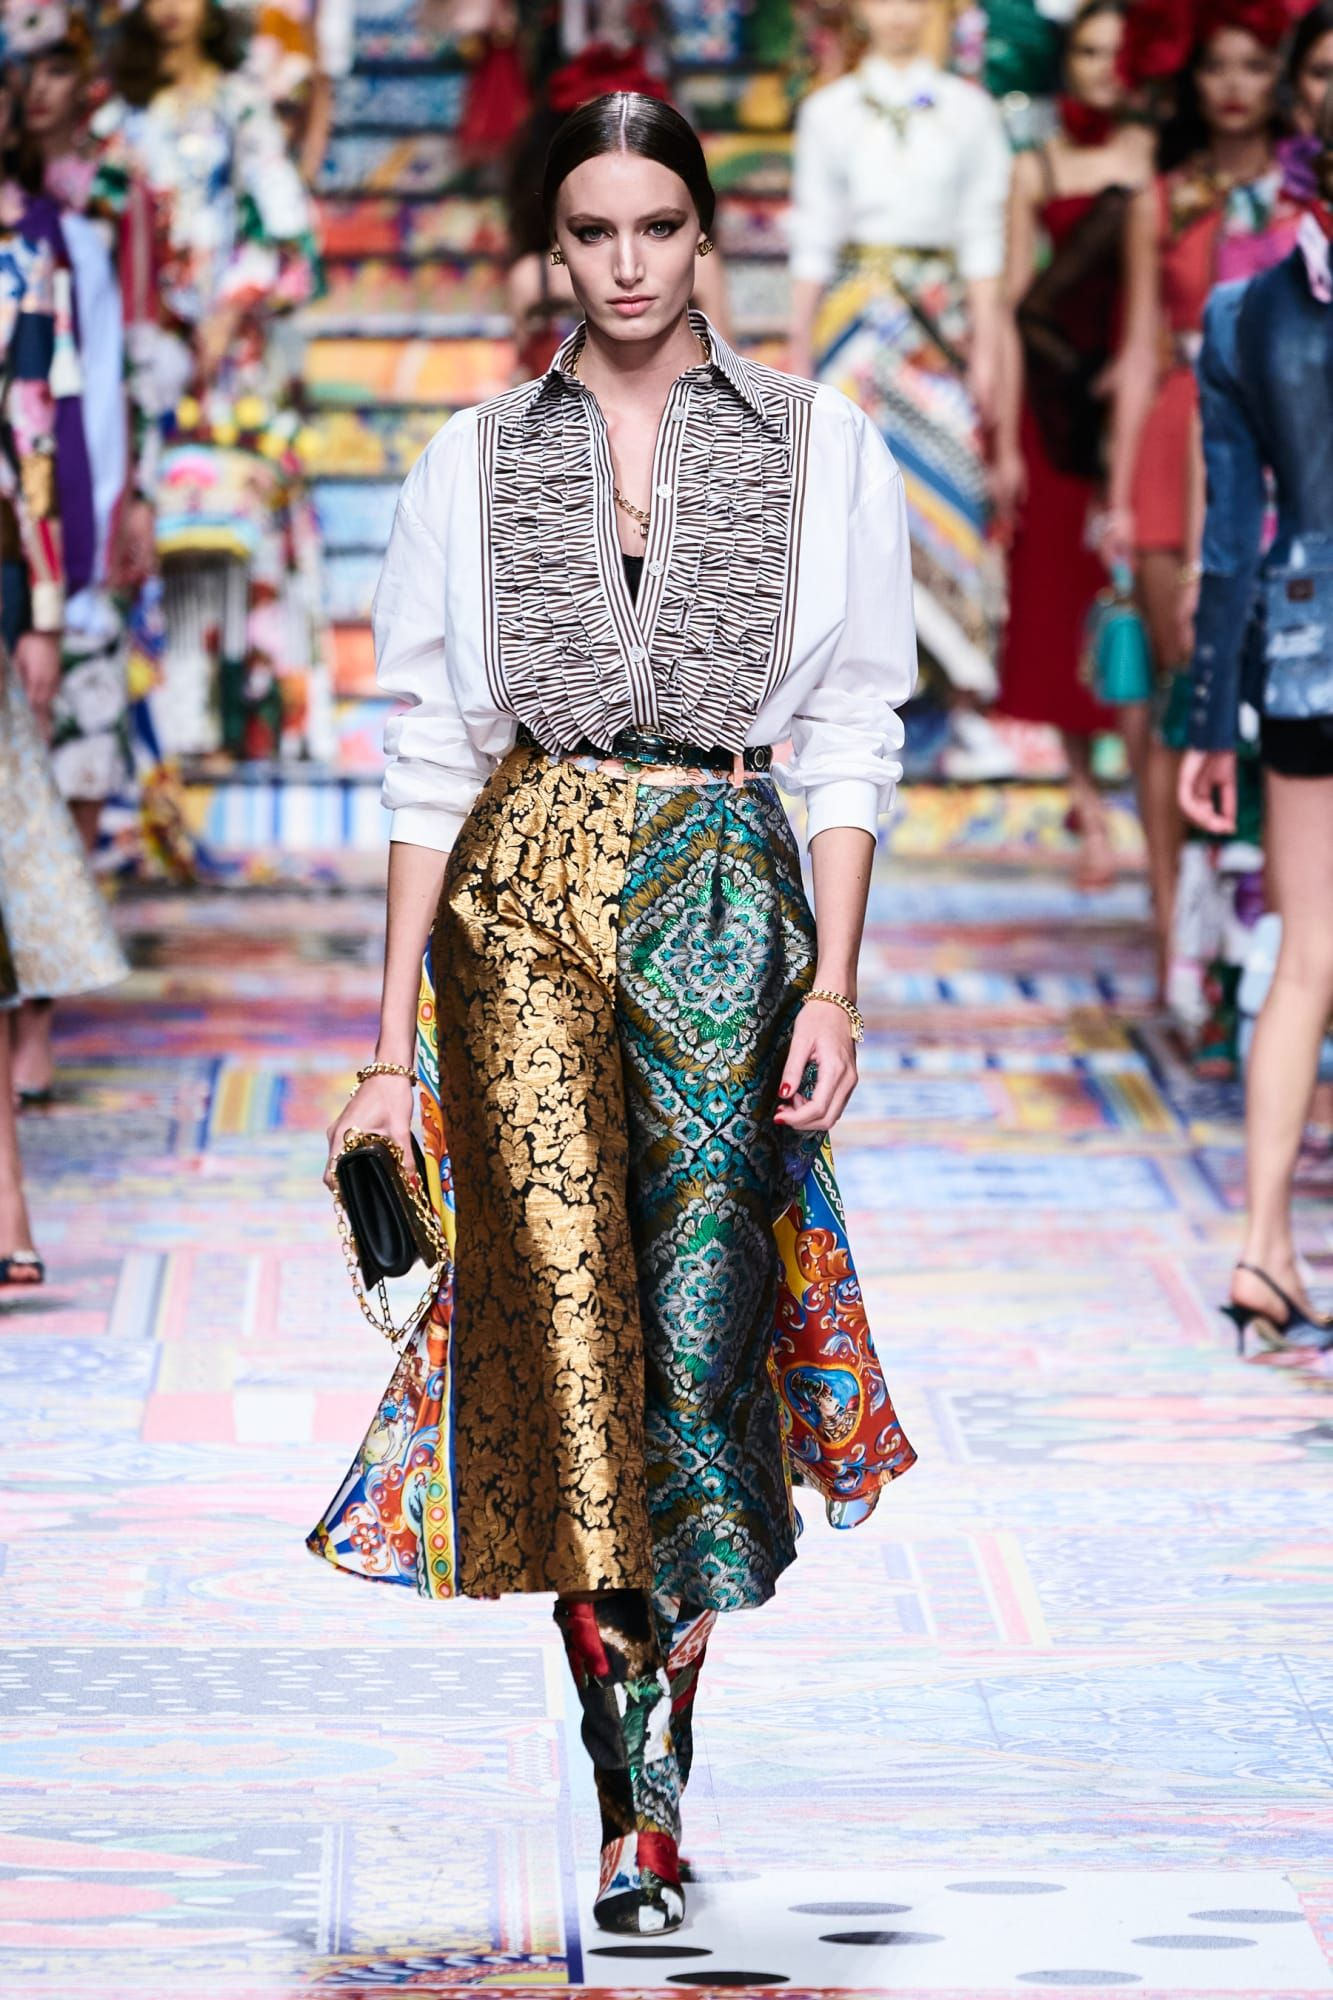 Dolce & Gabbana Takes Inspiration From Handmade Crafts for Spring